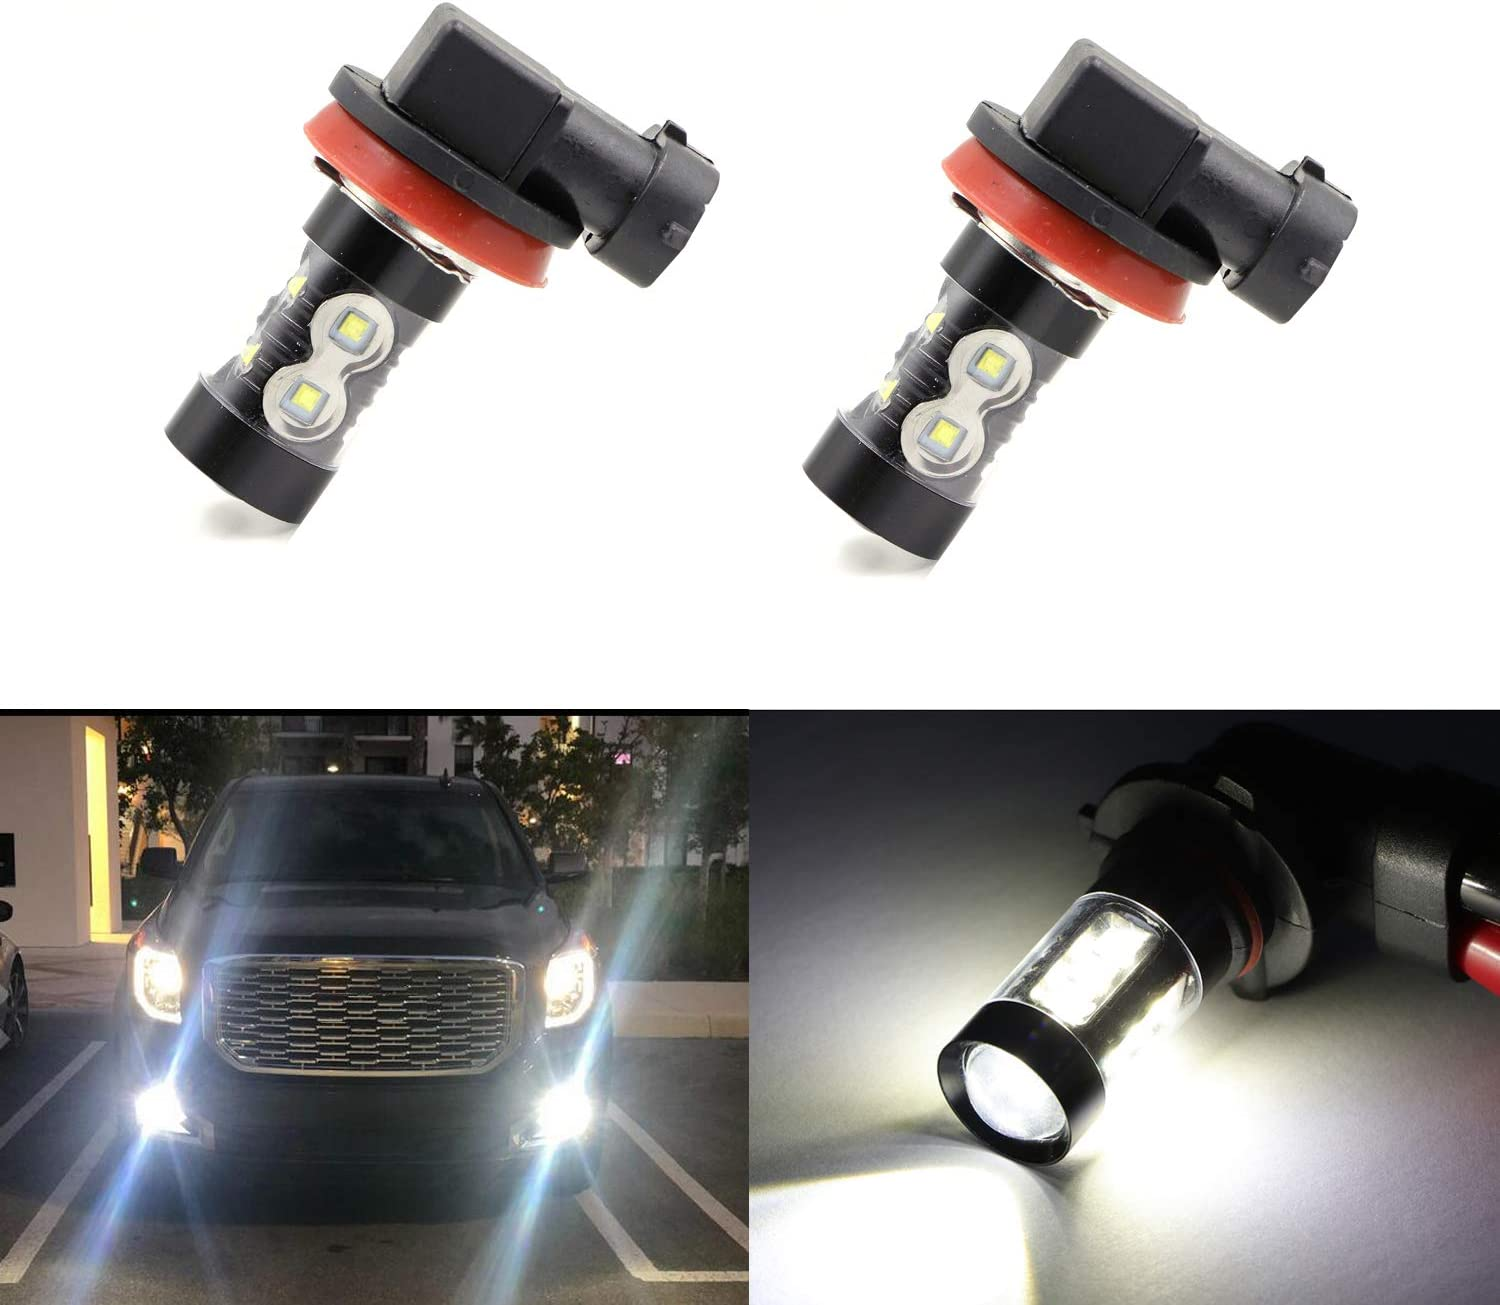 H11 H8 H16 Fog Light Bulbs LED 50W Ultra Extremely Bright 6000K 10 SMD White Xenon Low High Beam Bulbs Lamps (Pack of 2)